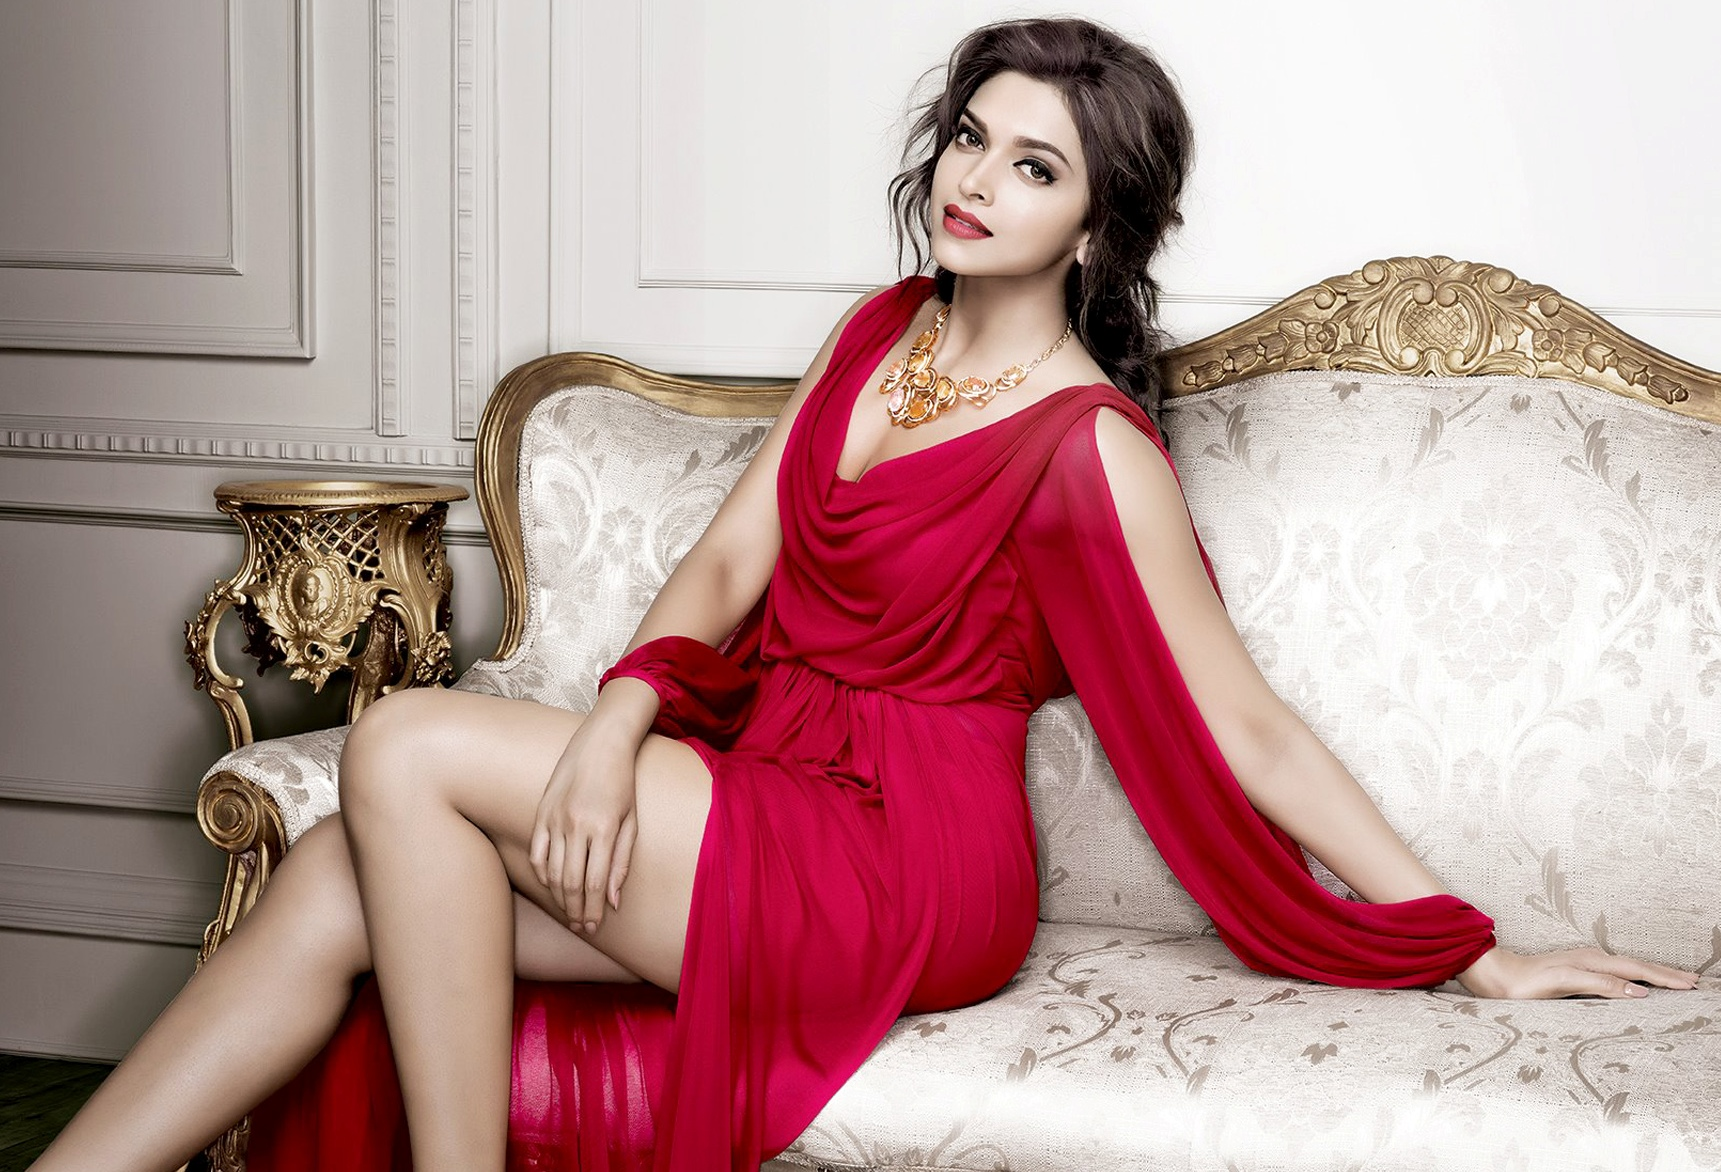 Pic 2: Deepika Padukone Hot Pics: 10 best from Photoshoots